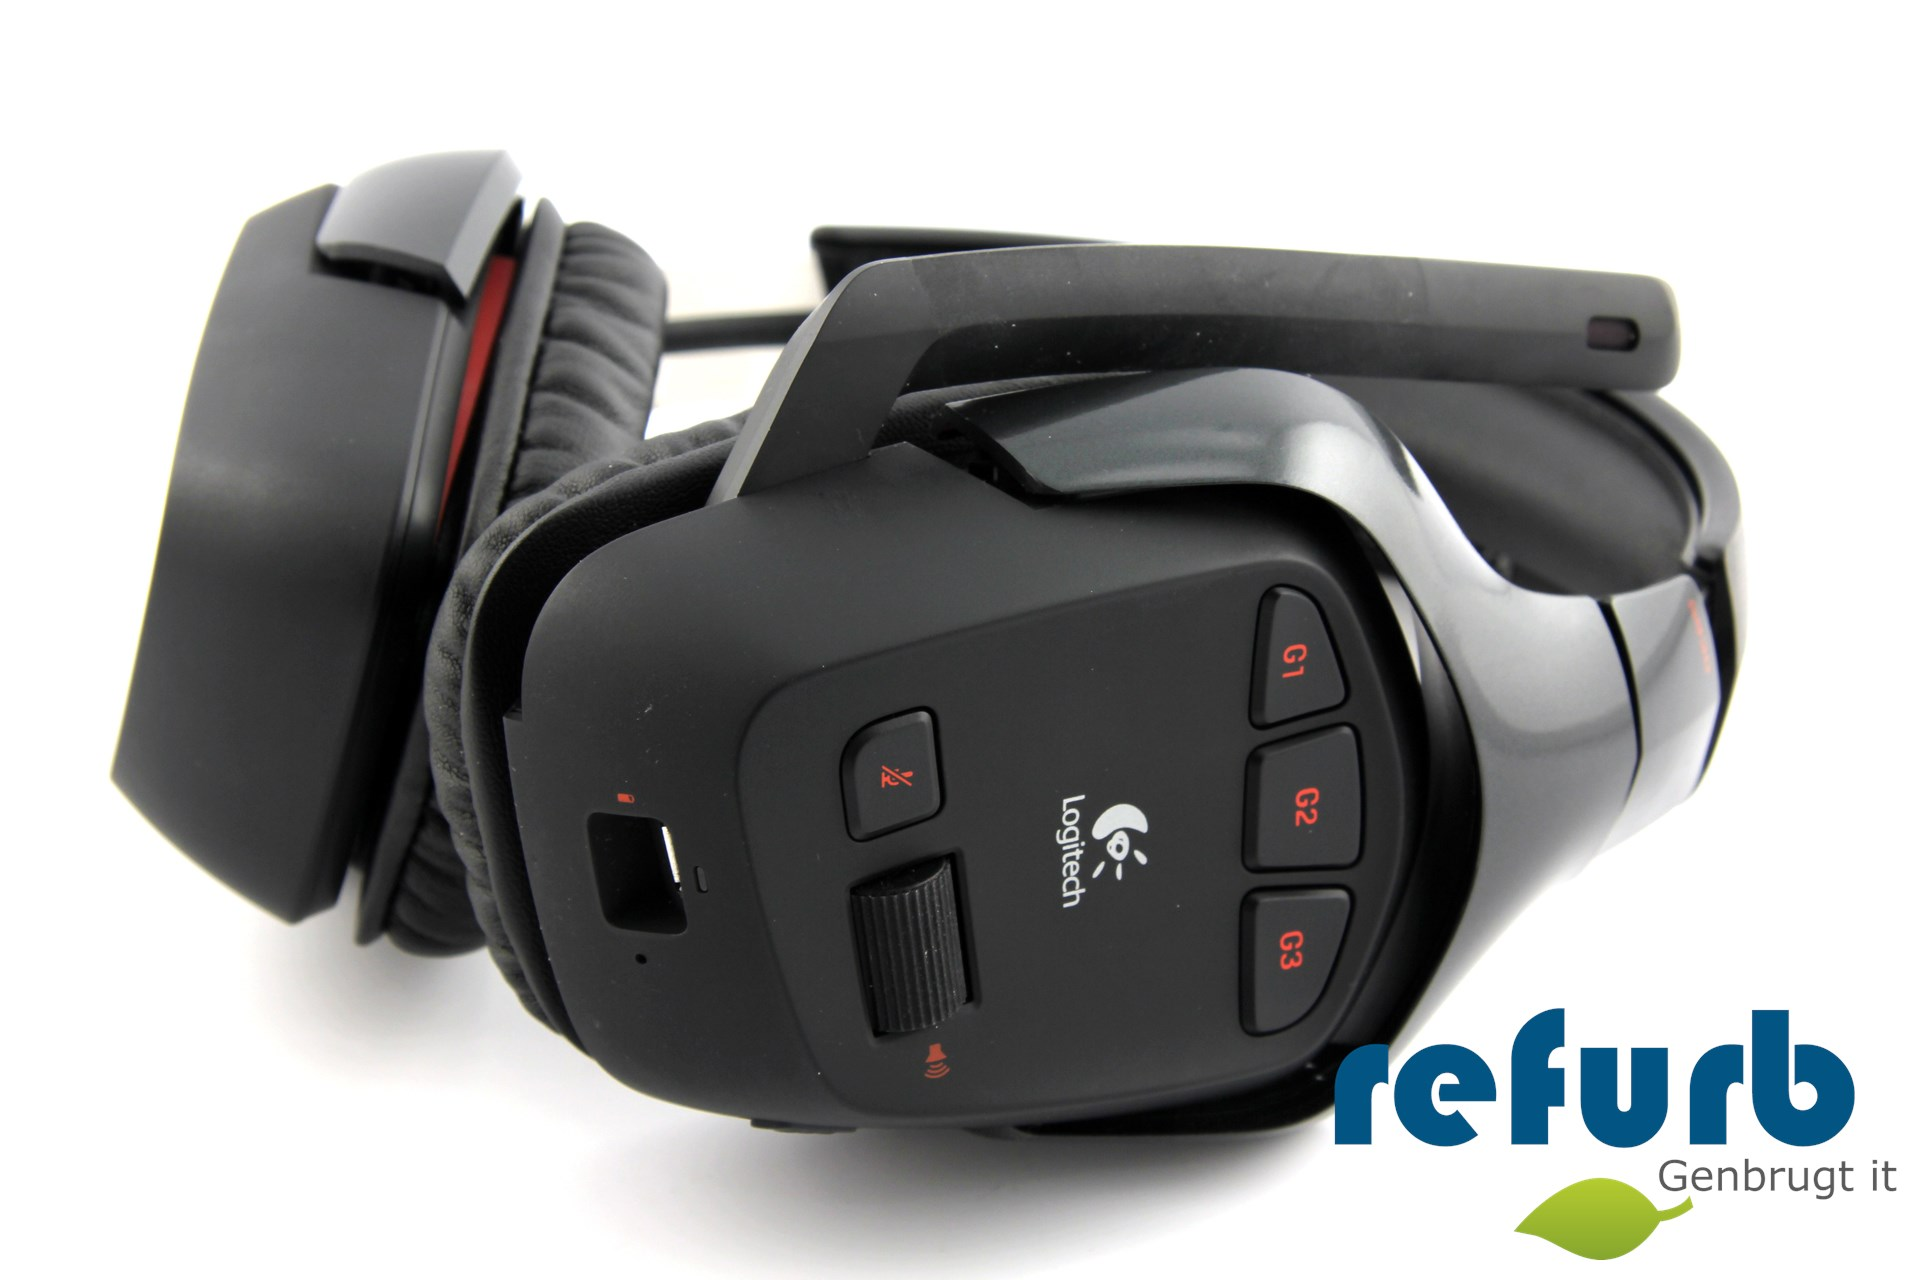 Logitech gaming wireless headset - Singapore airlines best